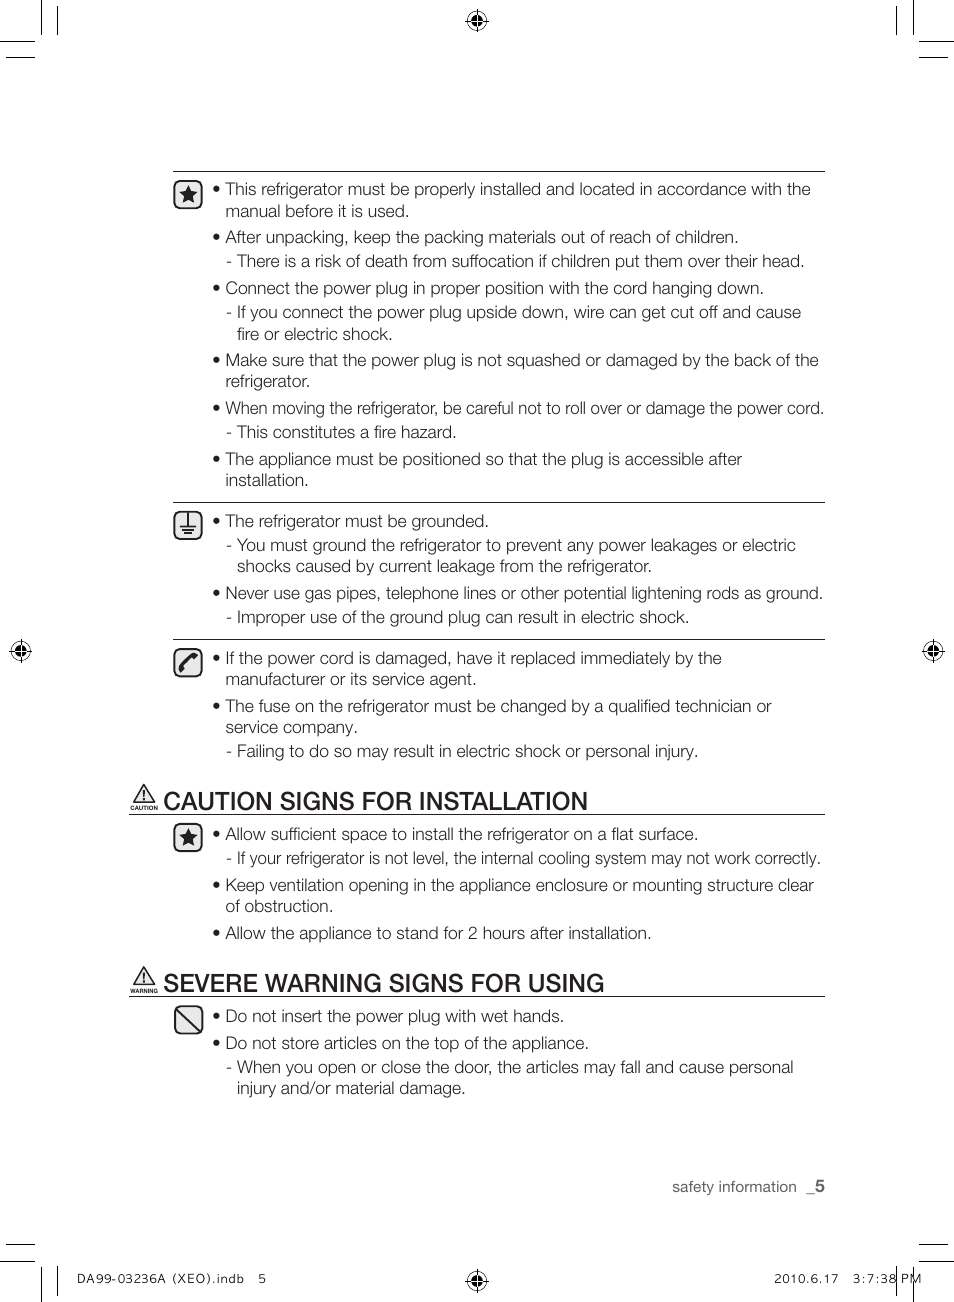 Caution Signs For Installation Severe Warning Signs For Using